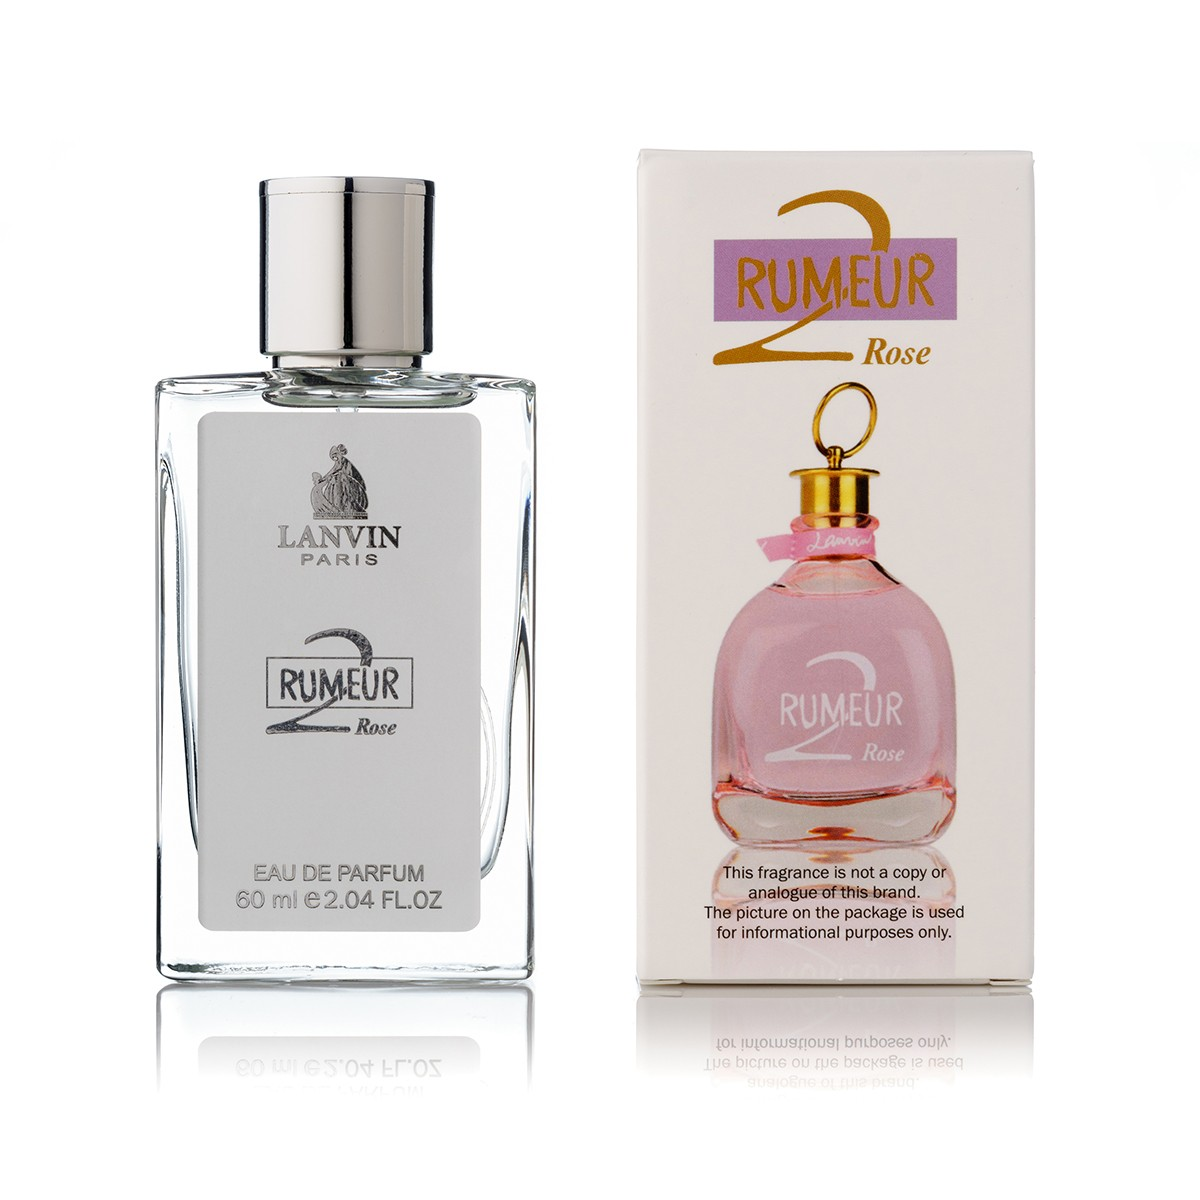 Lanvin Rumeur 2 Rose edp 60 ml tester color box